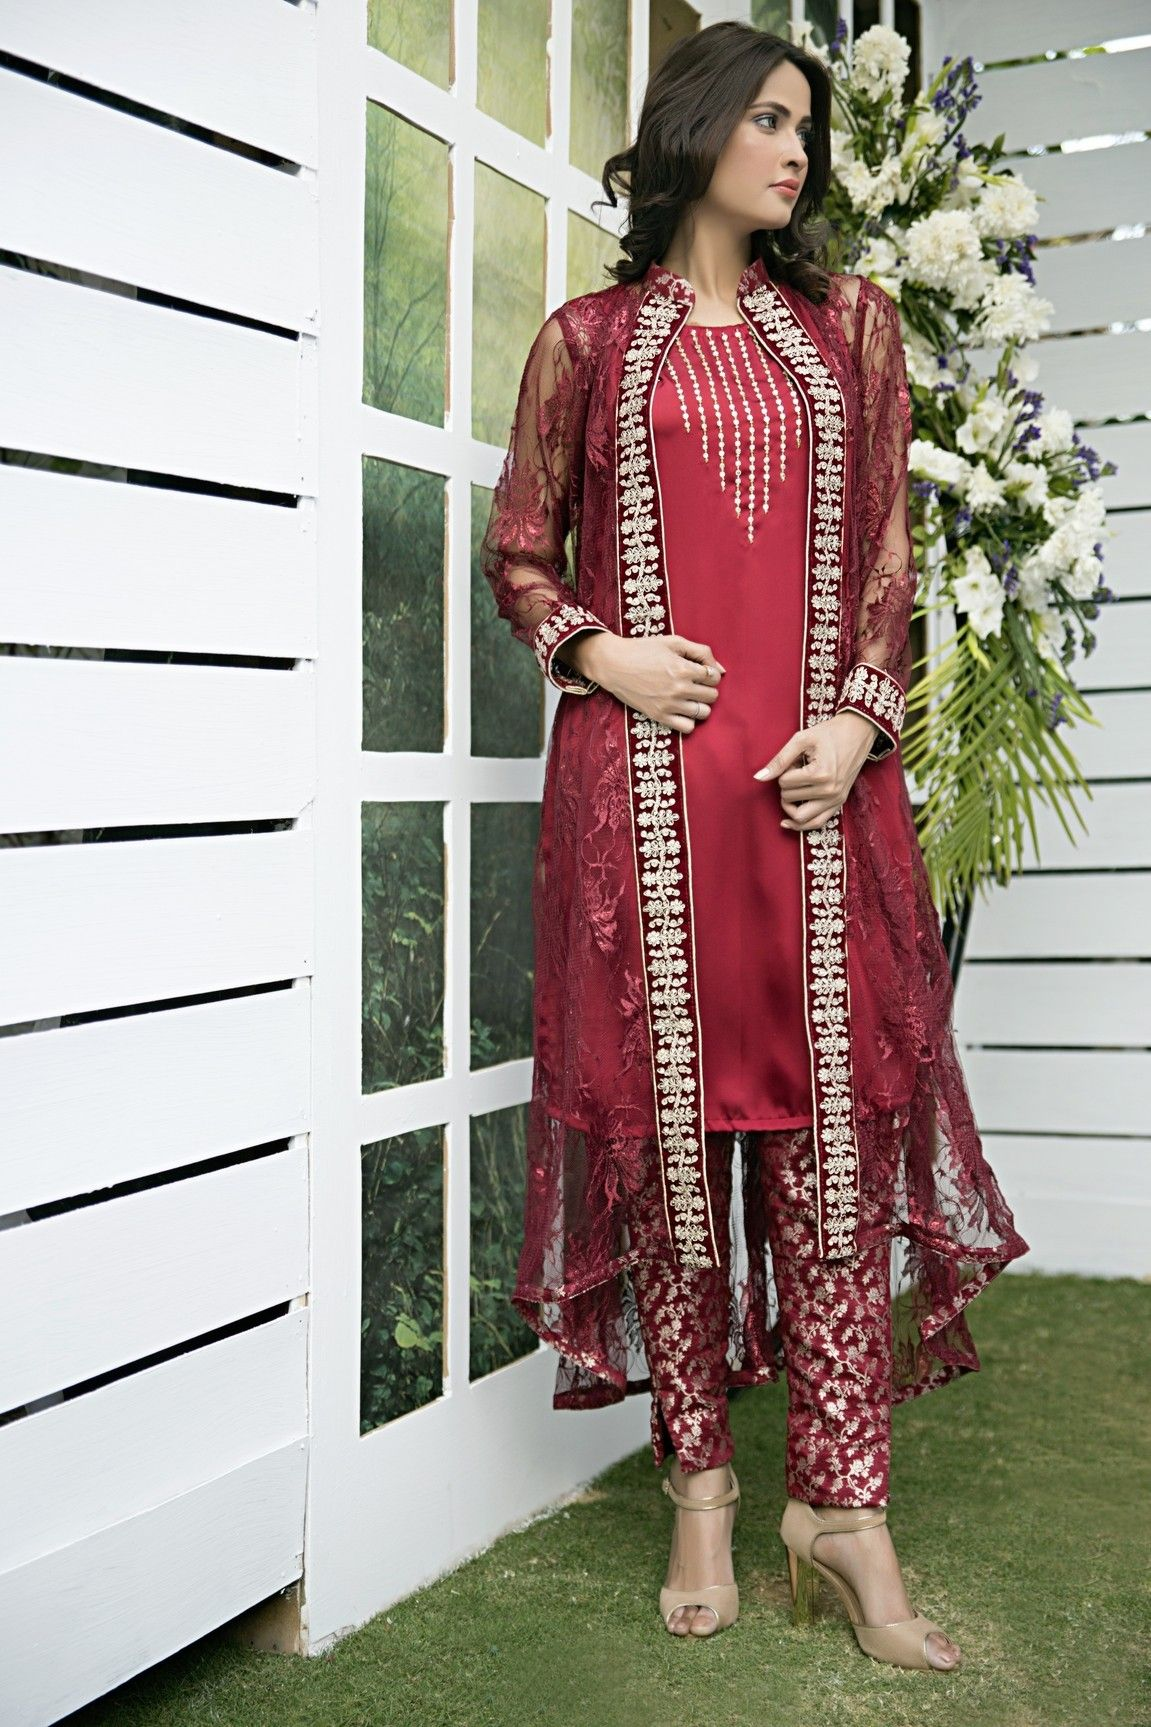 Shirt design with laces - Pakistani Designer Dresses Lowest Prices Maroon Chantilly Lace Collection Gown Dress Latest Pakistani